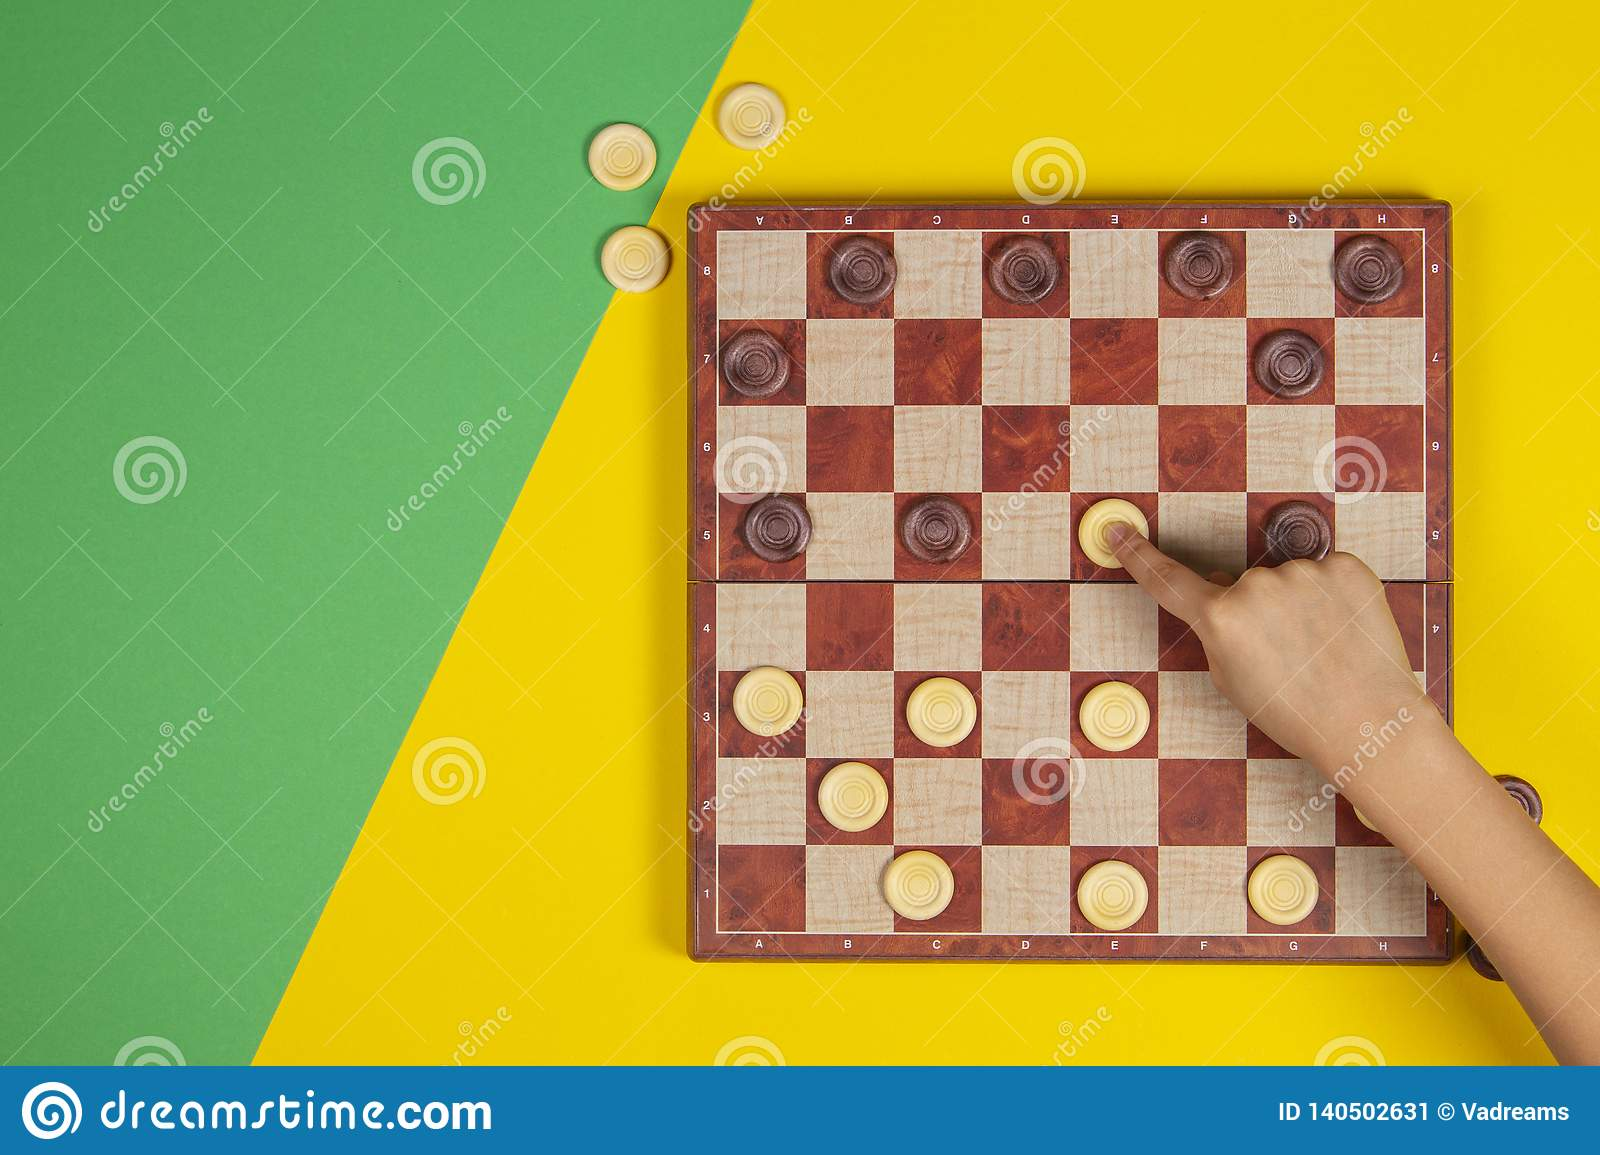 Child hand playing checkers on checker board game over yellow and green background, top view